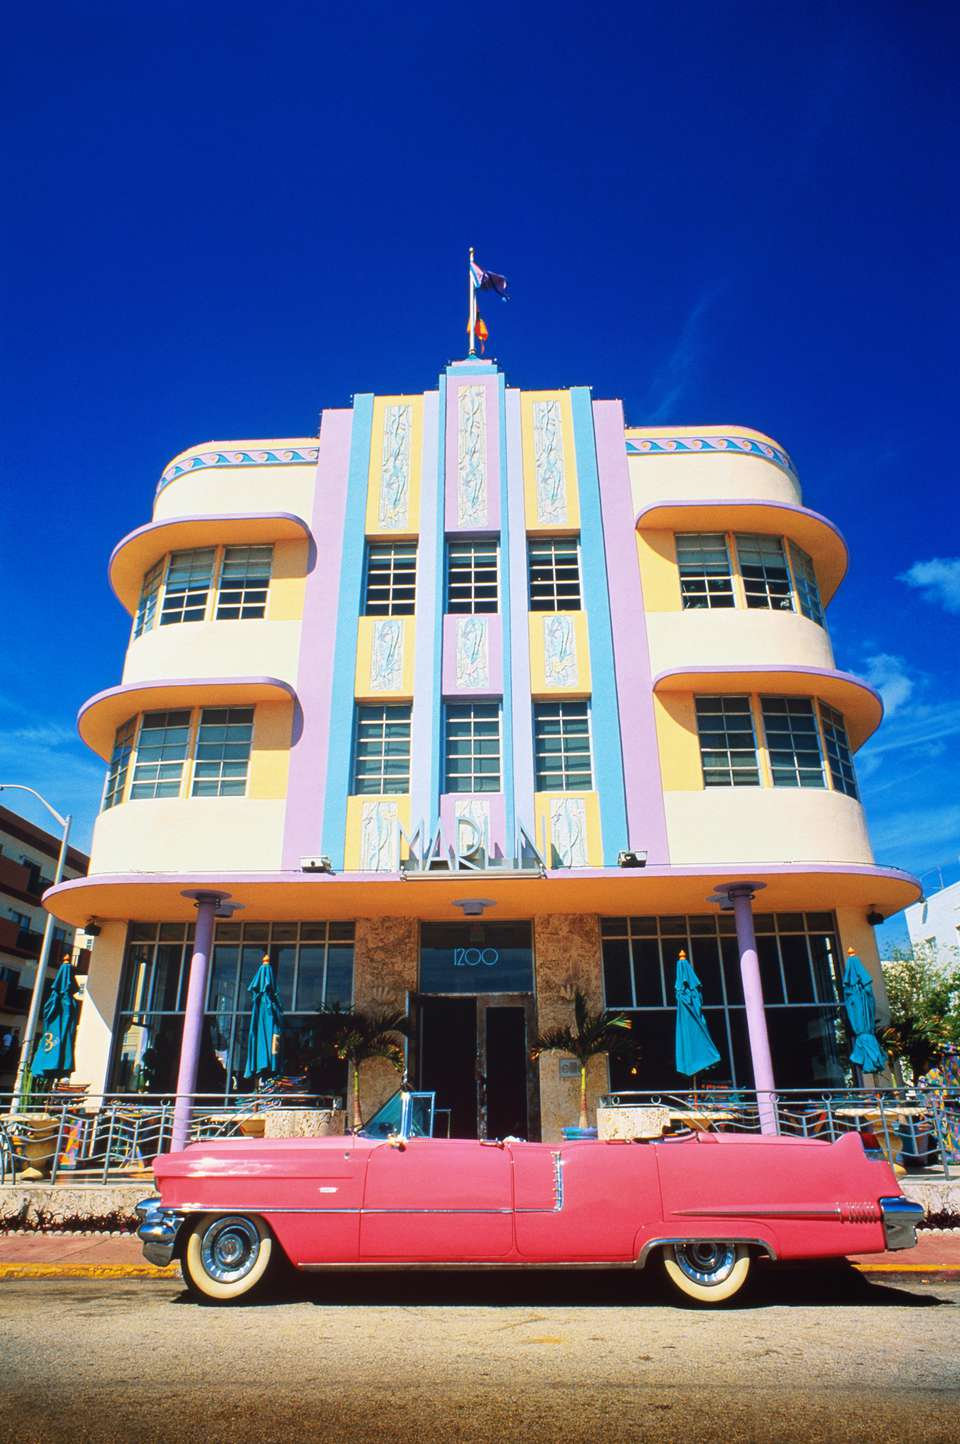 USA,Florida,Miami Beach,Art deco building,pink vintage car in fore